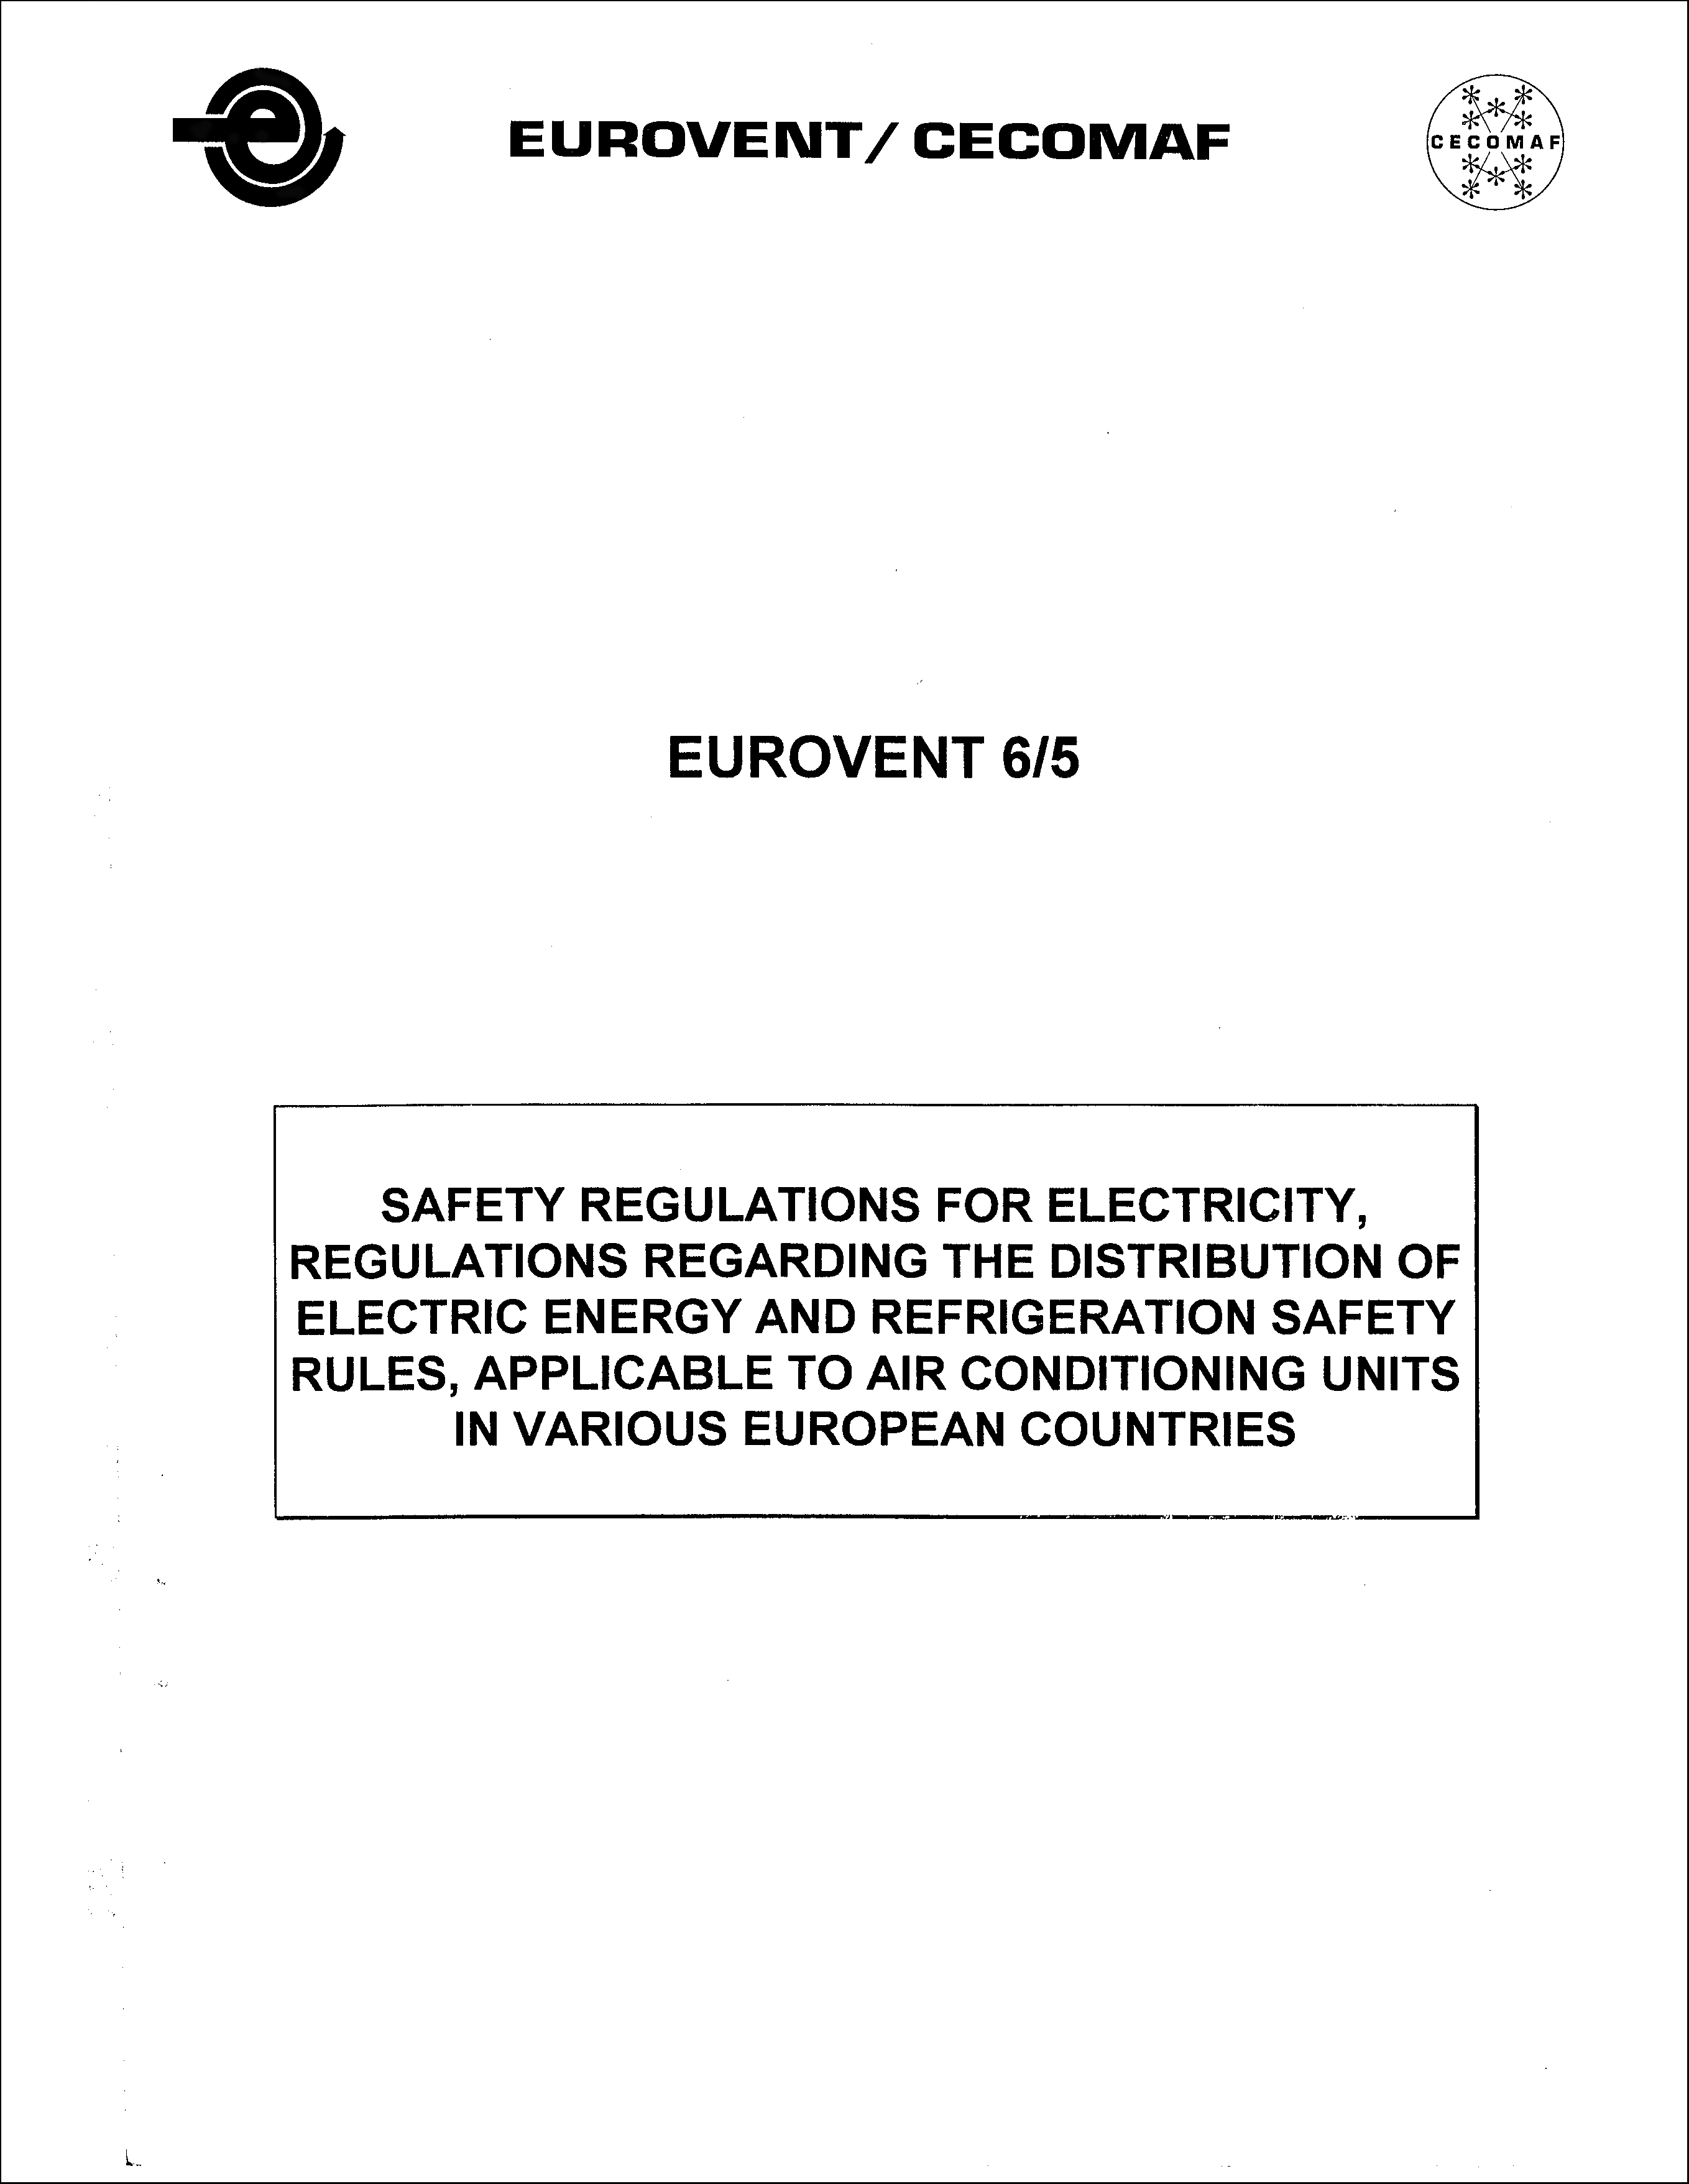 1985 - Eurovent safety regulations for electricity